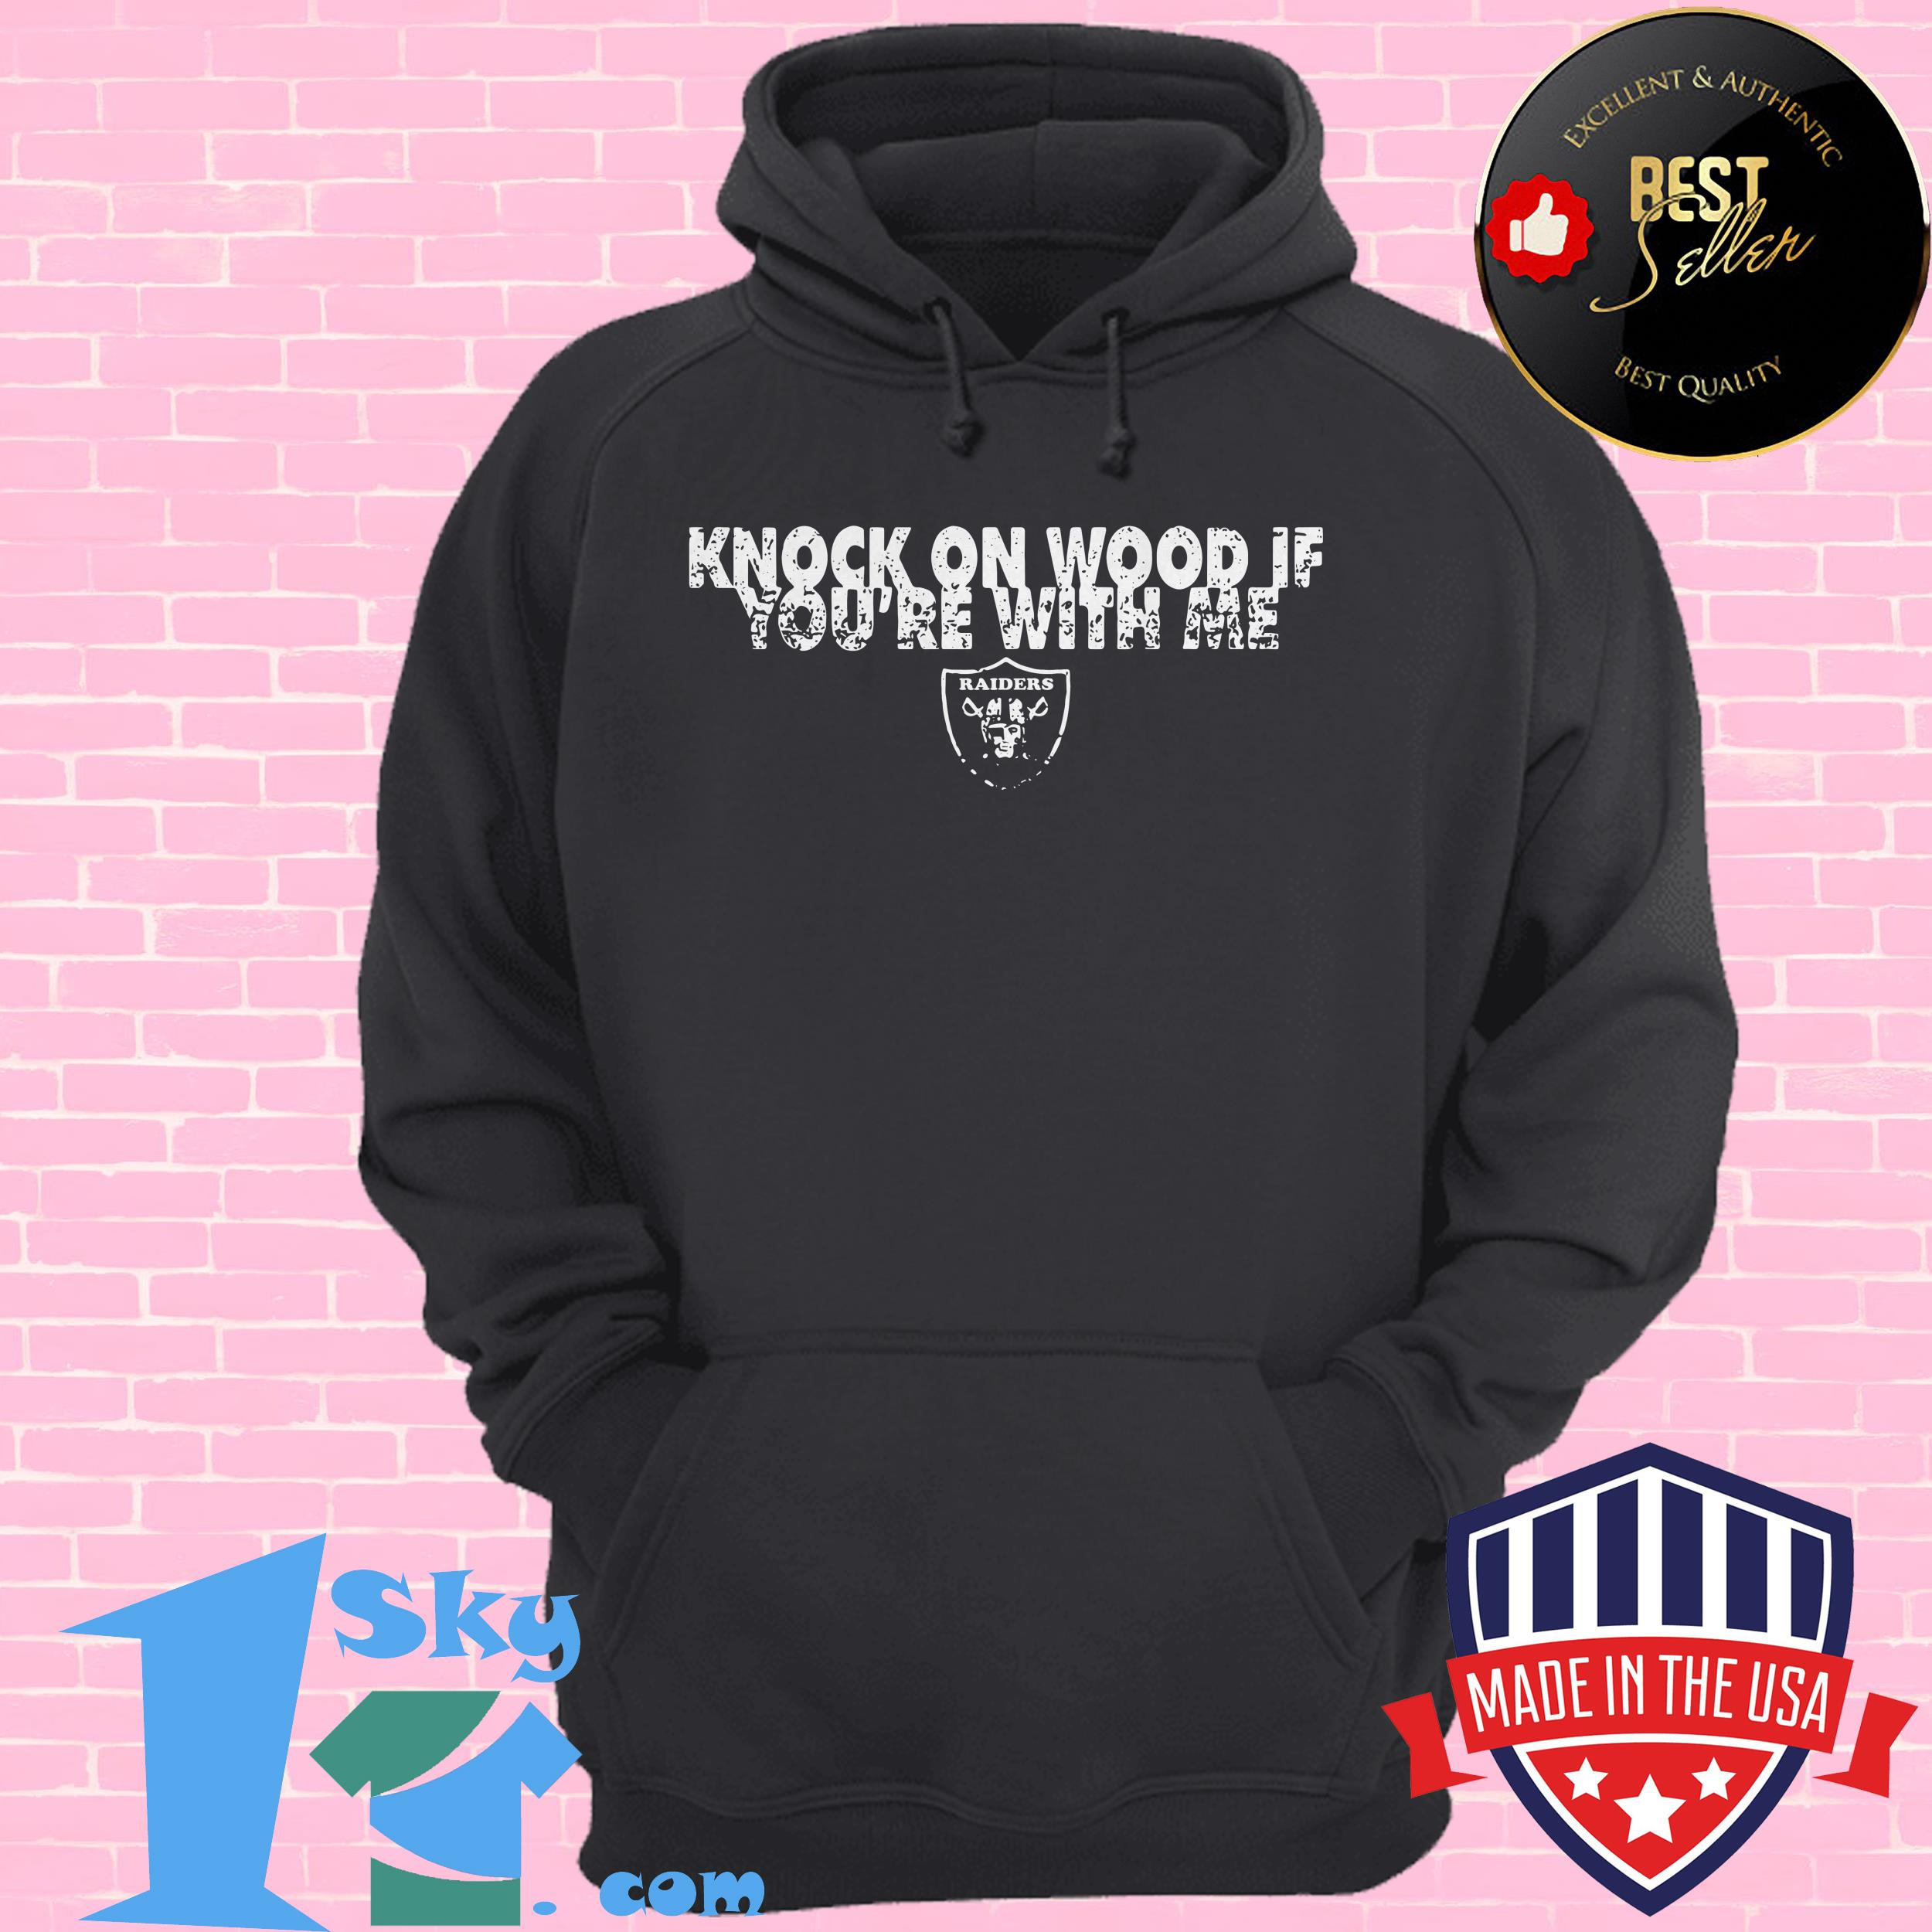 knock on wood if youre with me oakland raiders hoodie - Knock on wood if you're with me Oakland Raiders shirt